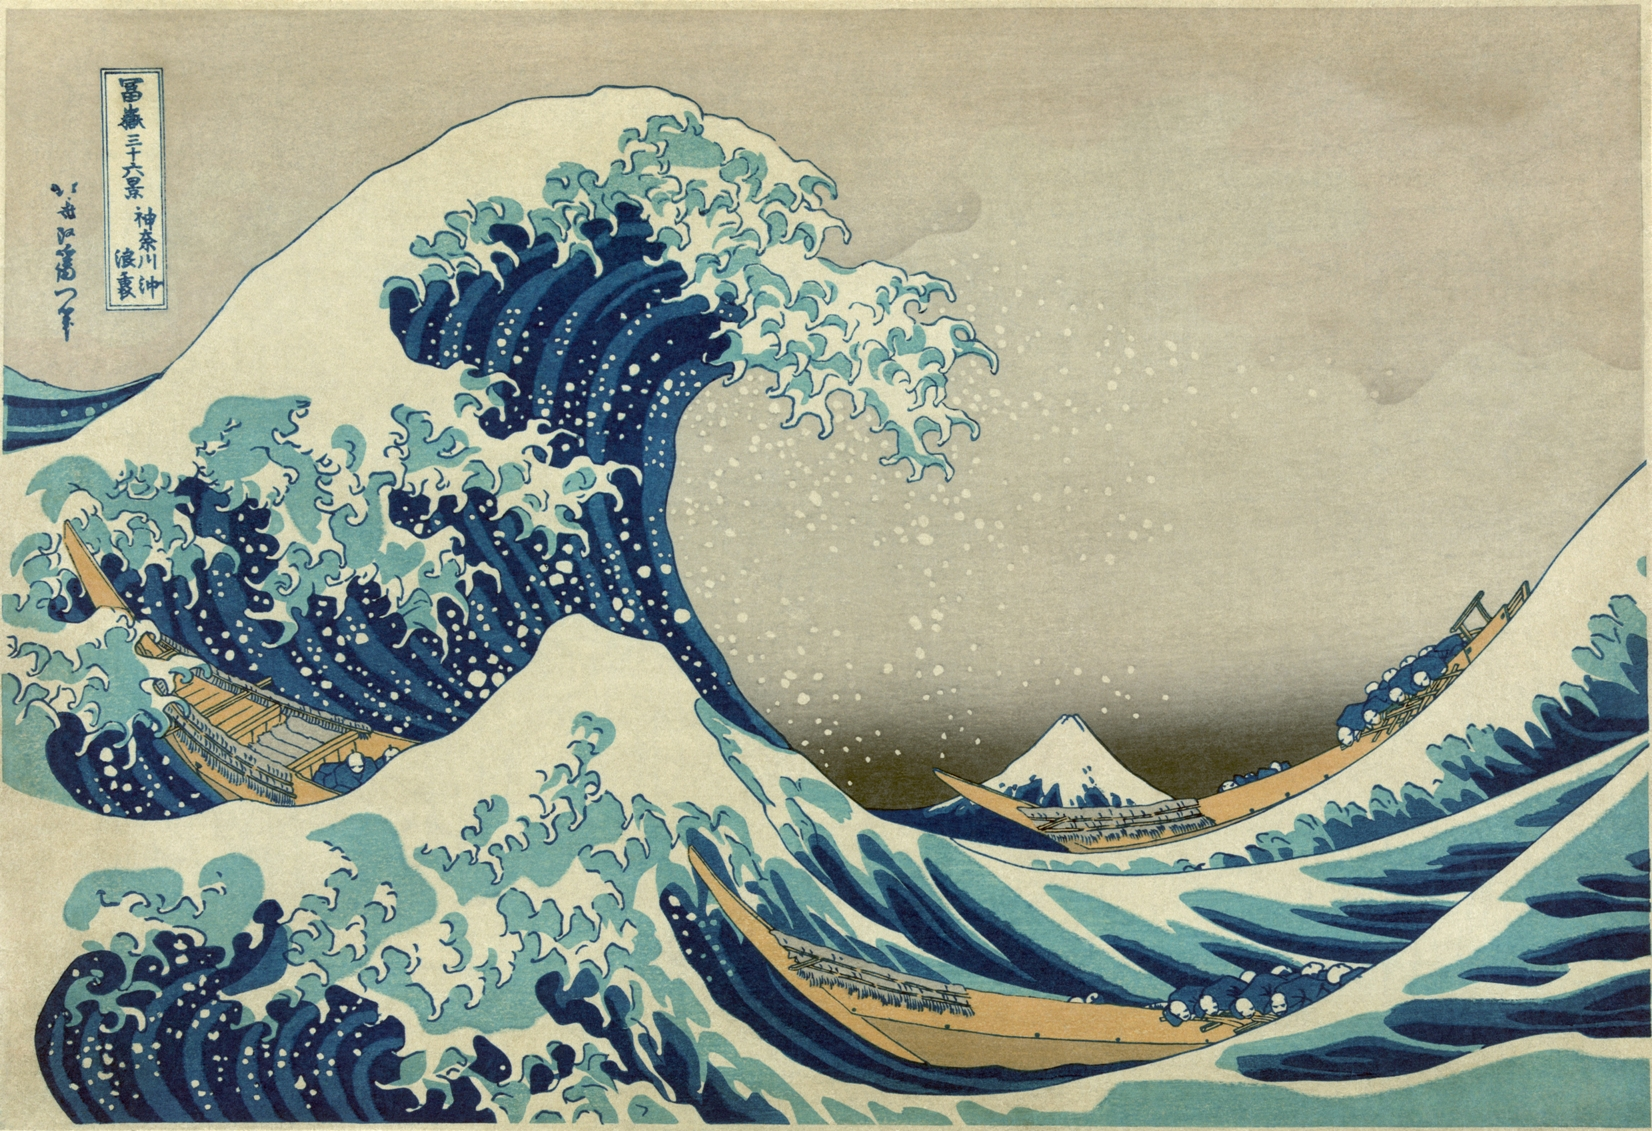 Photo of the ca. 1820's Japanese painting titled Kanagawa oki namiura 神奈川沖浪裏 (Big Wave of Kanagawa) by Katsushika Hokusai 葛飾北斎